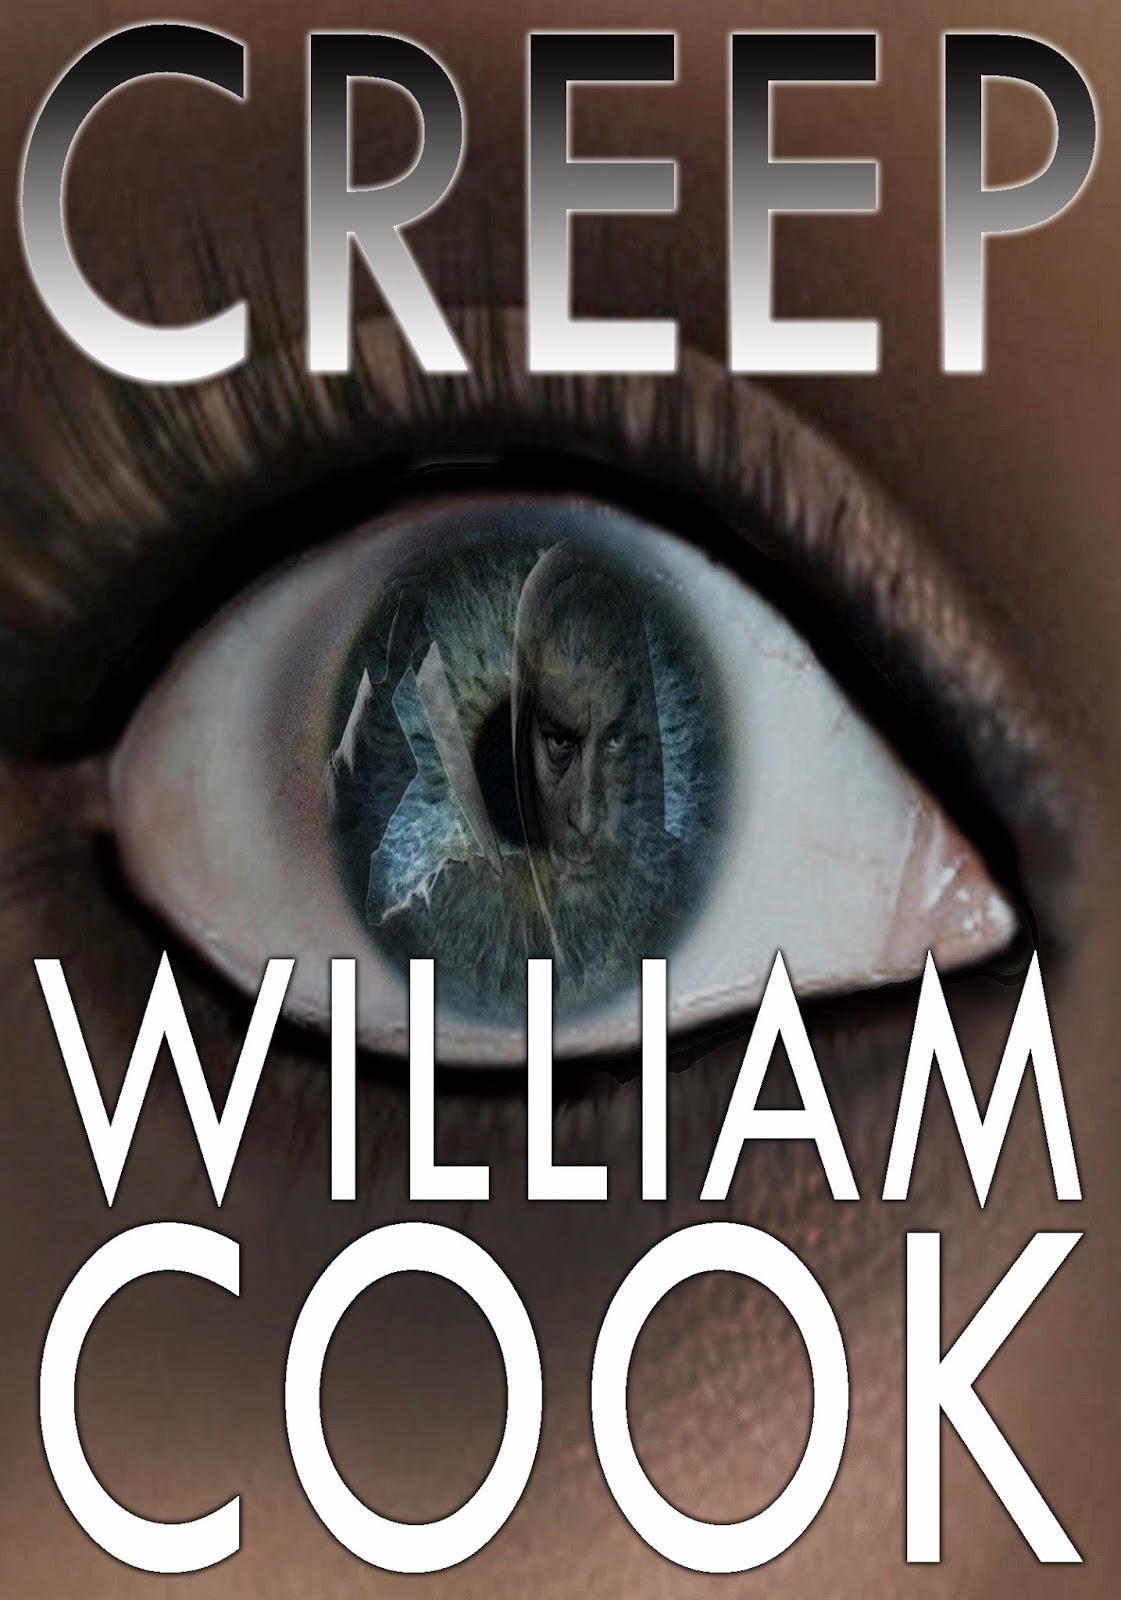 http://www.amazon.com/CREEP-Dark-Thriller-Fiction-Book-ebook/dp/B00CSGOUAK/ref=la_B003PA513I_1_10?s=books&ie=UTF8&qid=1420588245&sr=1-10